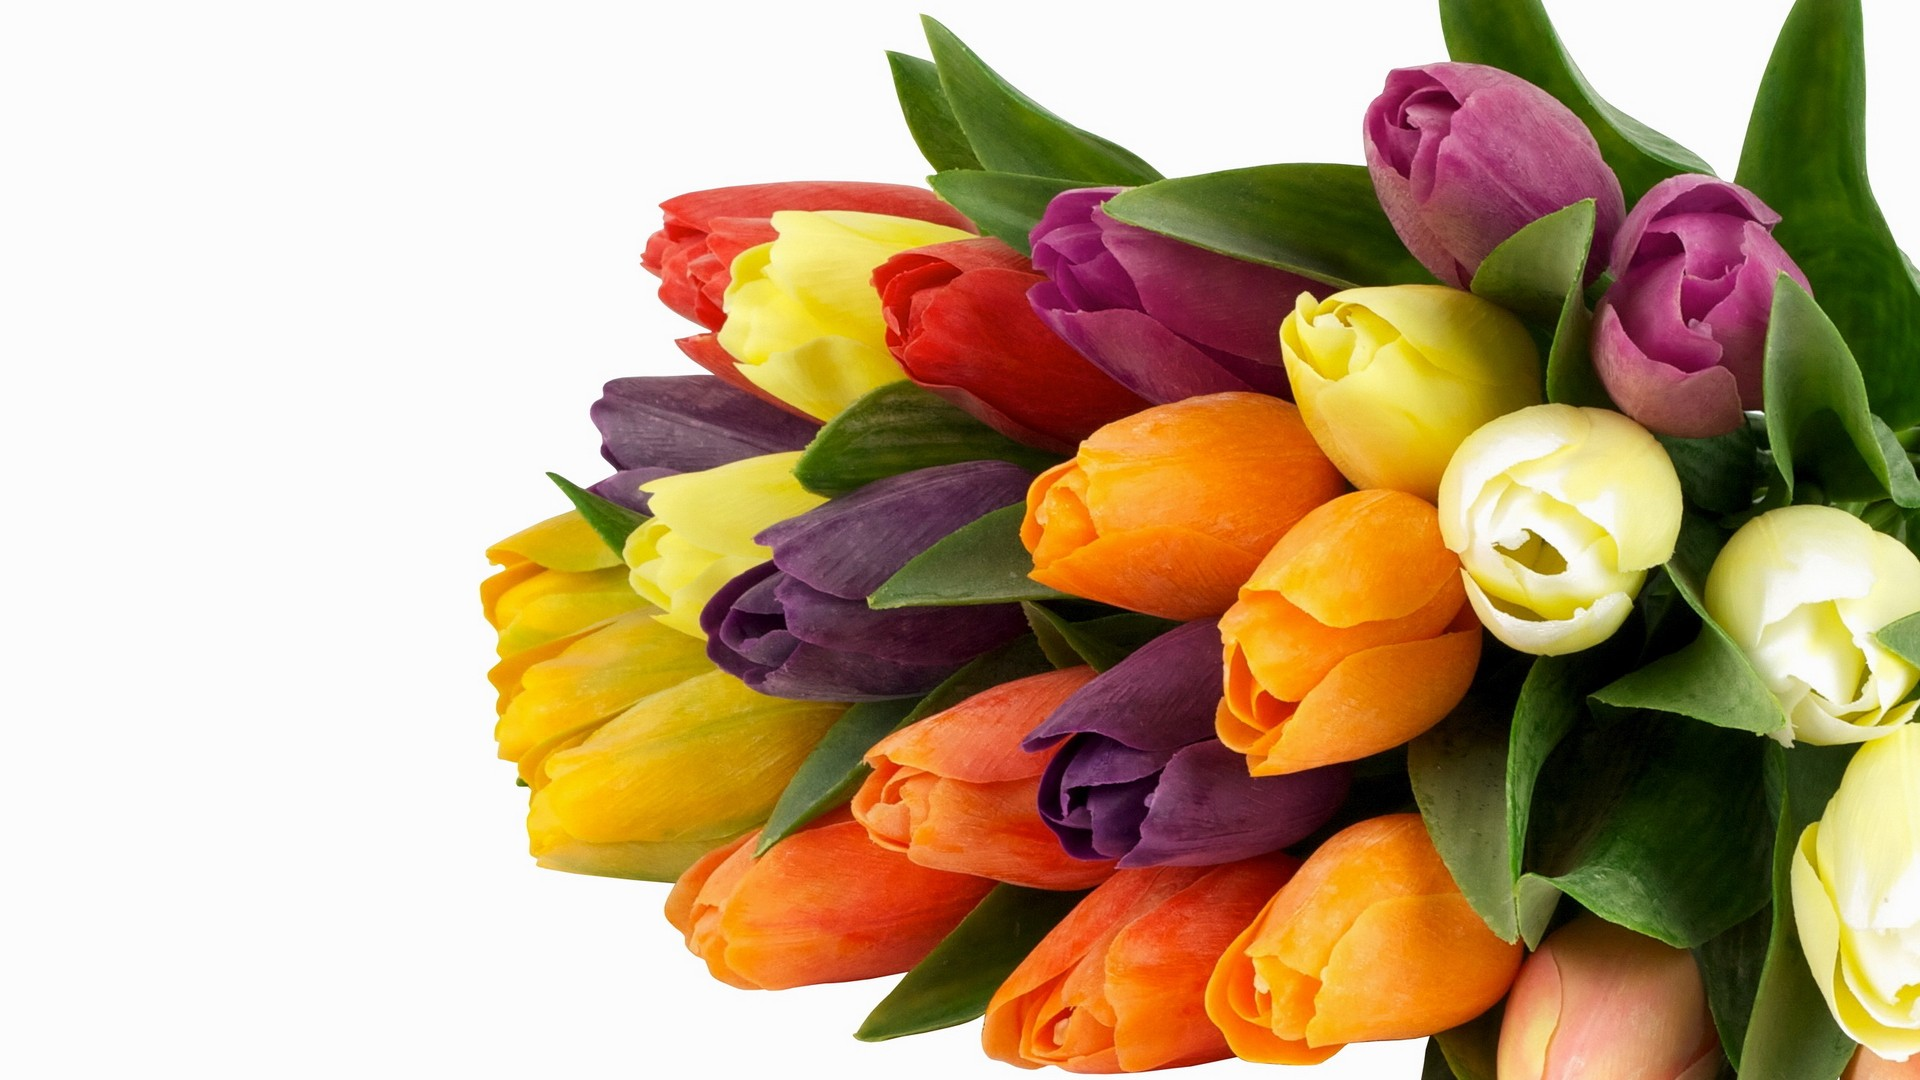 International Women's Day Flowers background image